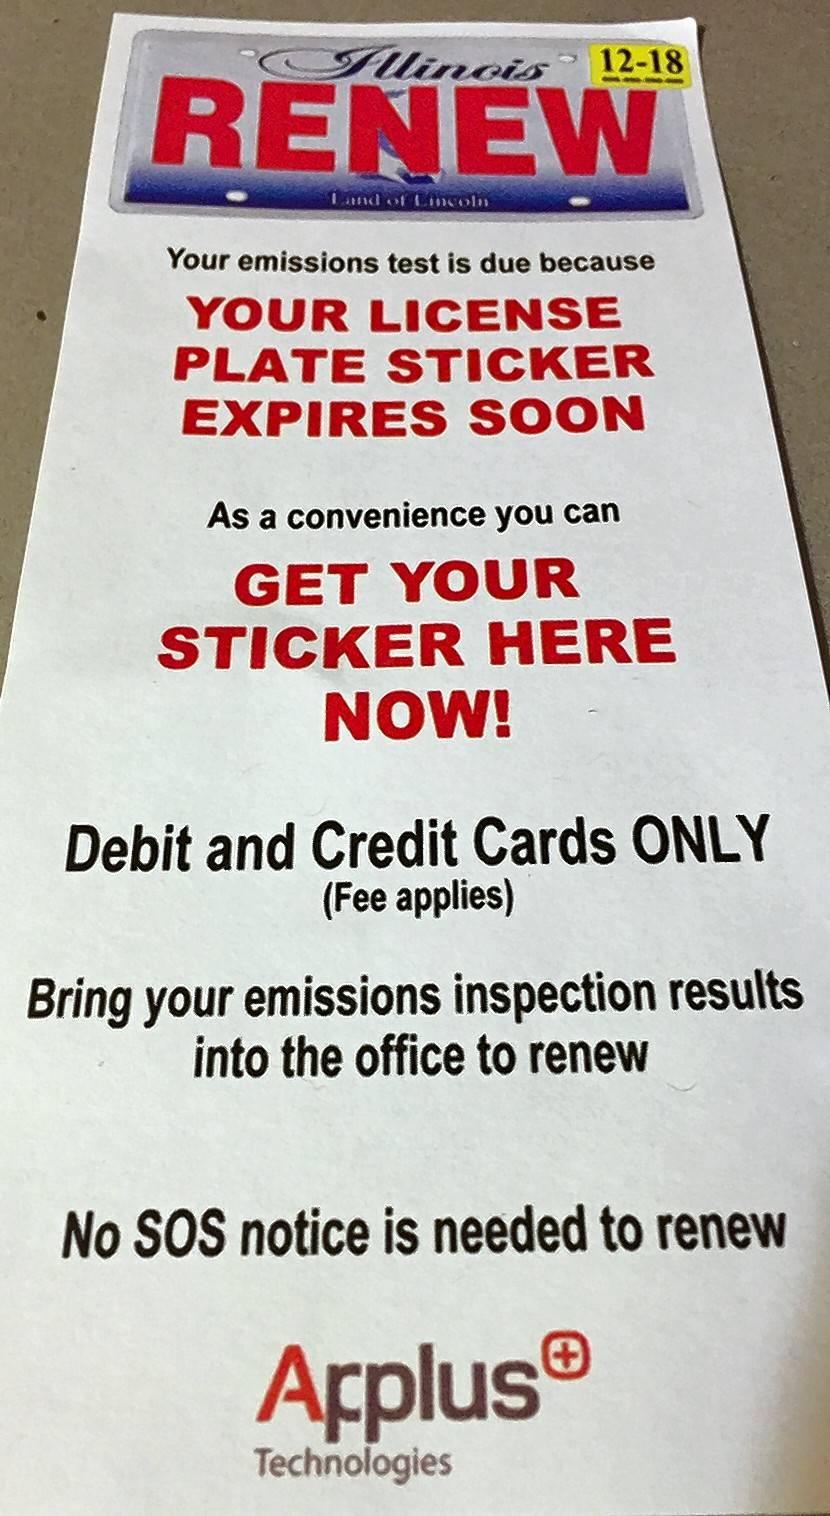 pairing emissions test, sticker renewal is convenient -- for a fee